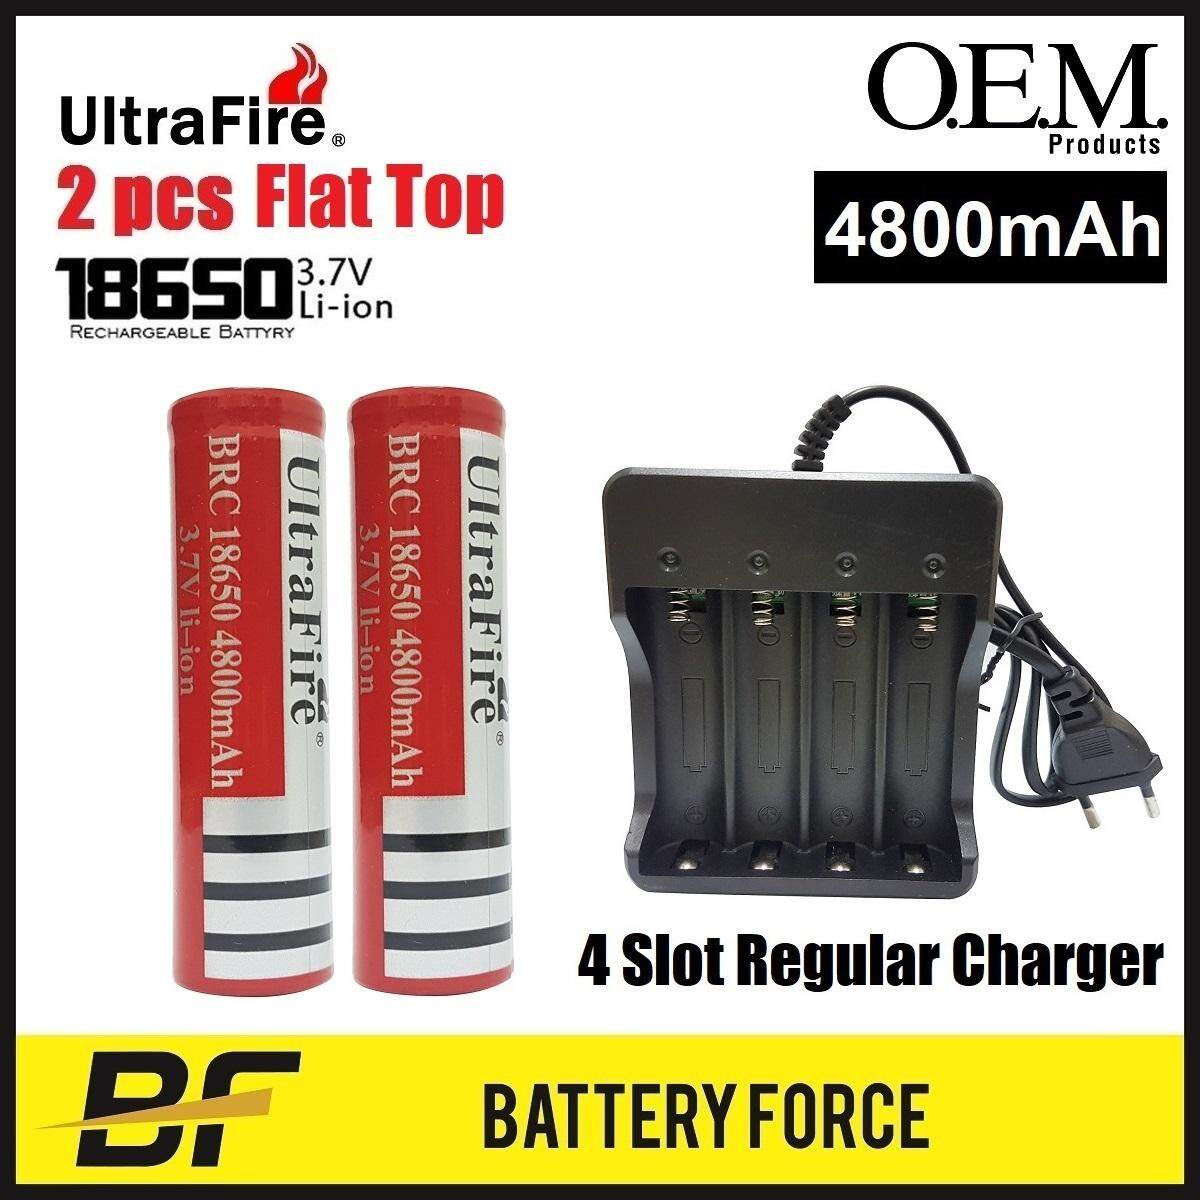 3.7V 18650 UltraFire 4800mAH Flat Top Rechargeable Lithium Ion Battery BRC Vape Battery W 4 Slot Charger